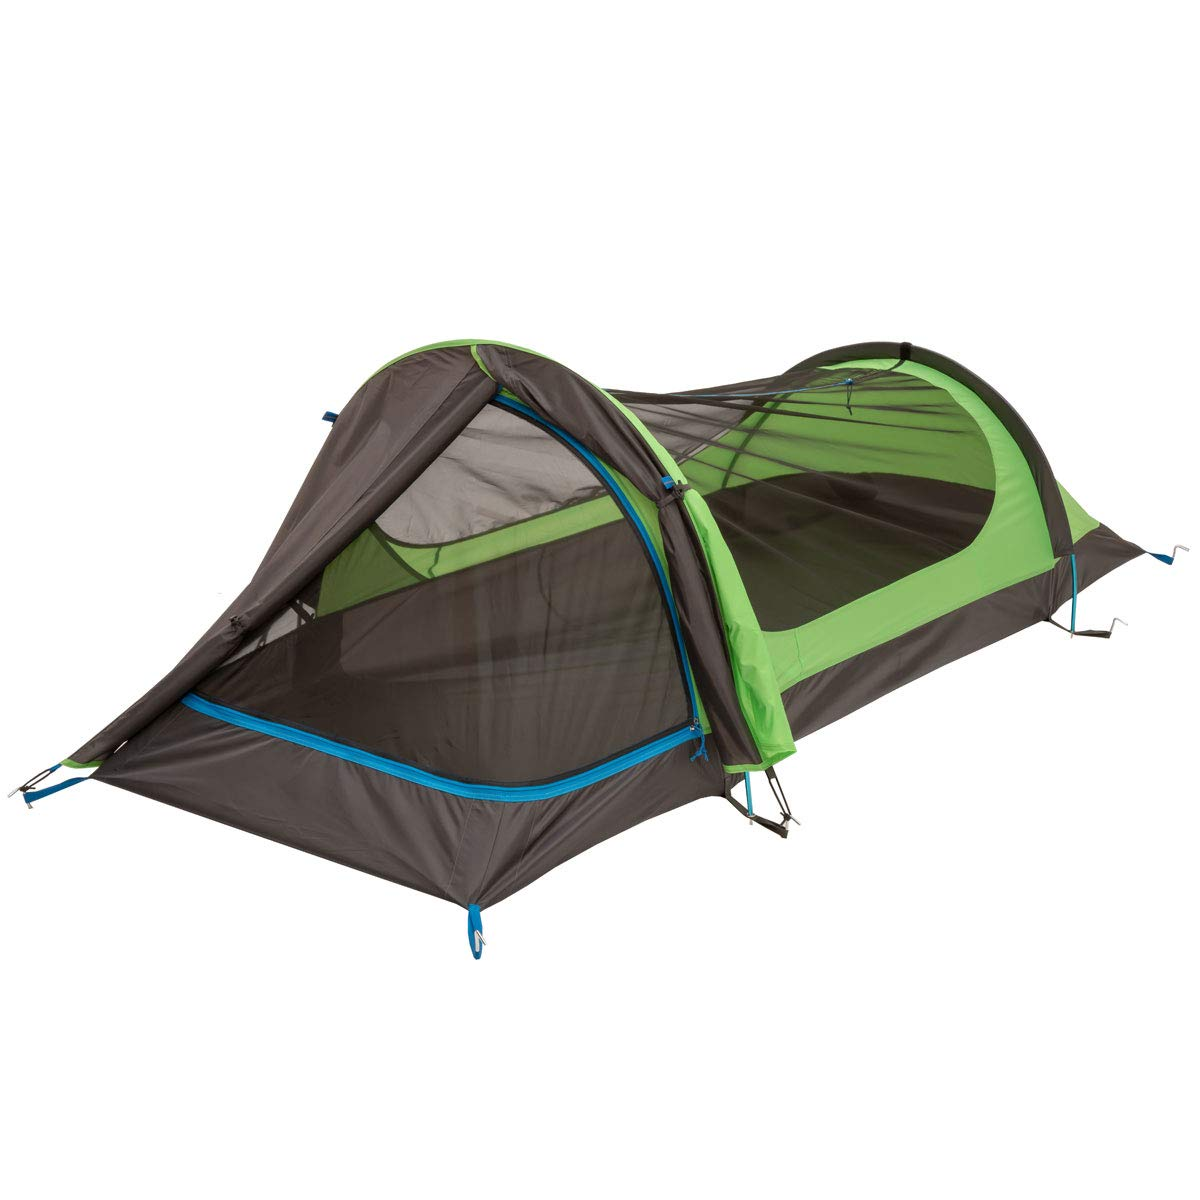 Eureka Solitaire AL One-Person, Three-Season Backpacking Tent